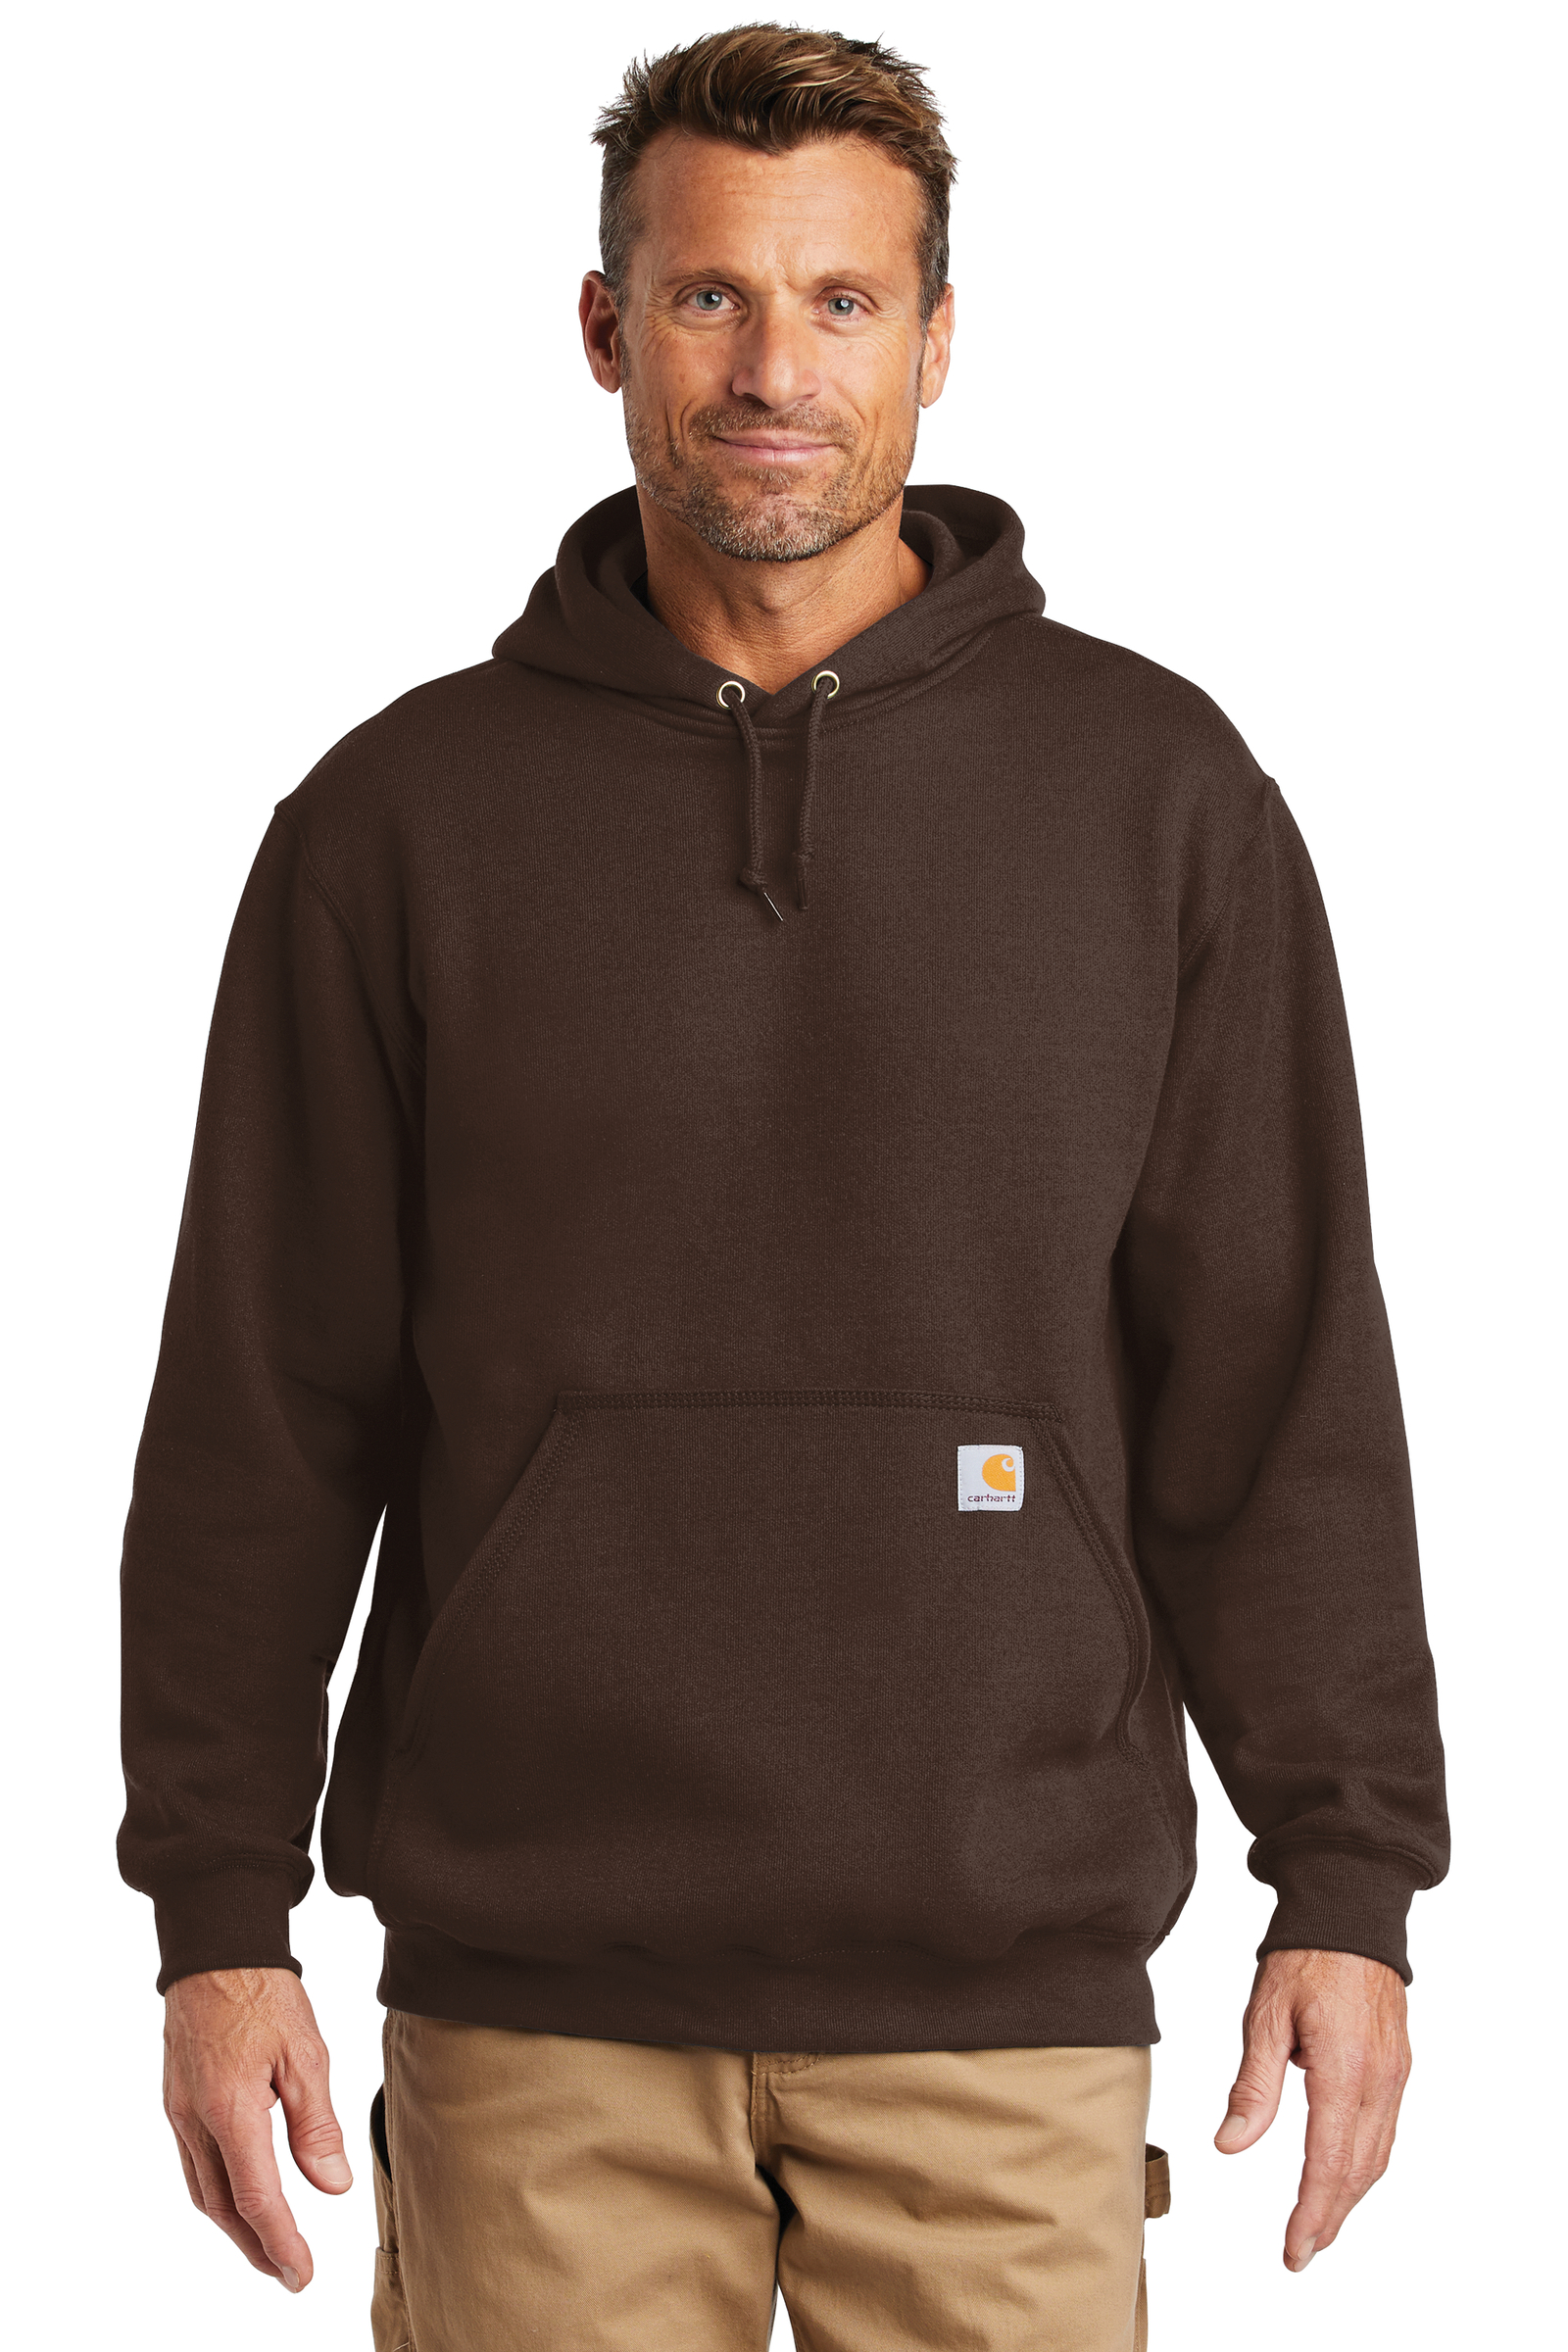 Carhartt Embroidered Men's Midweight Hooded Sweatshirt